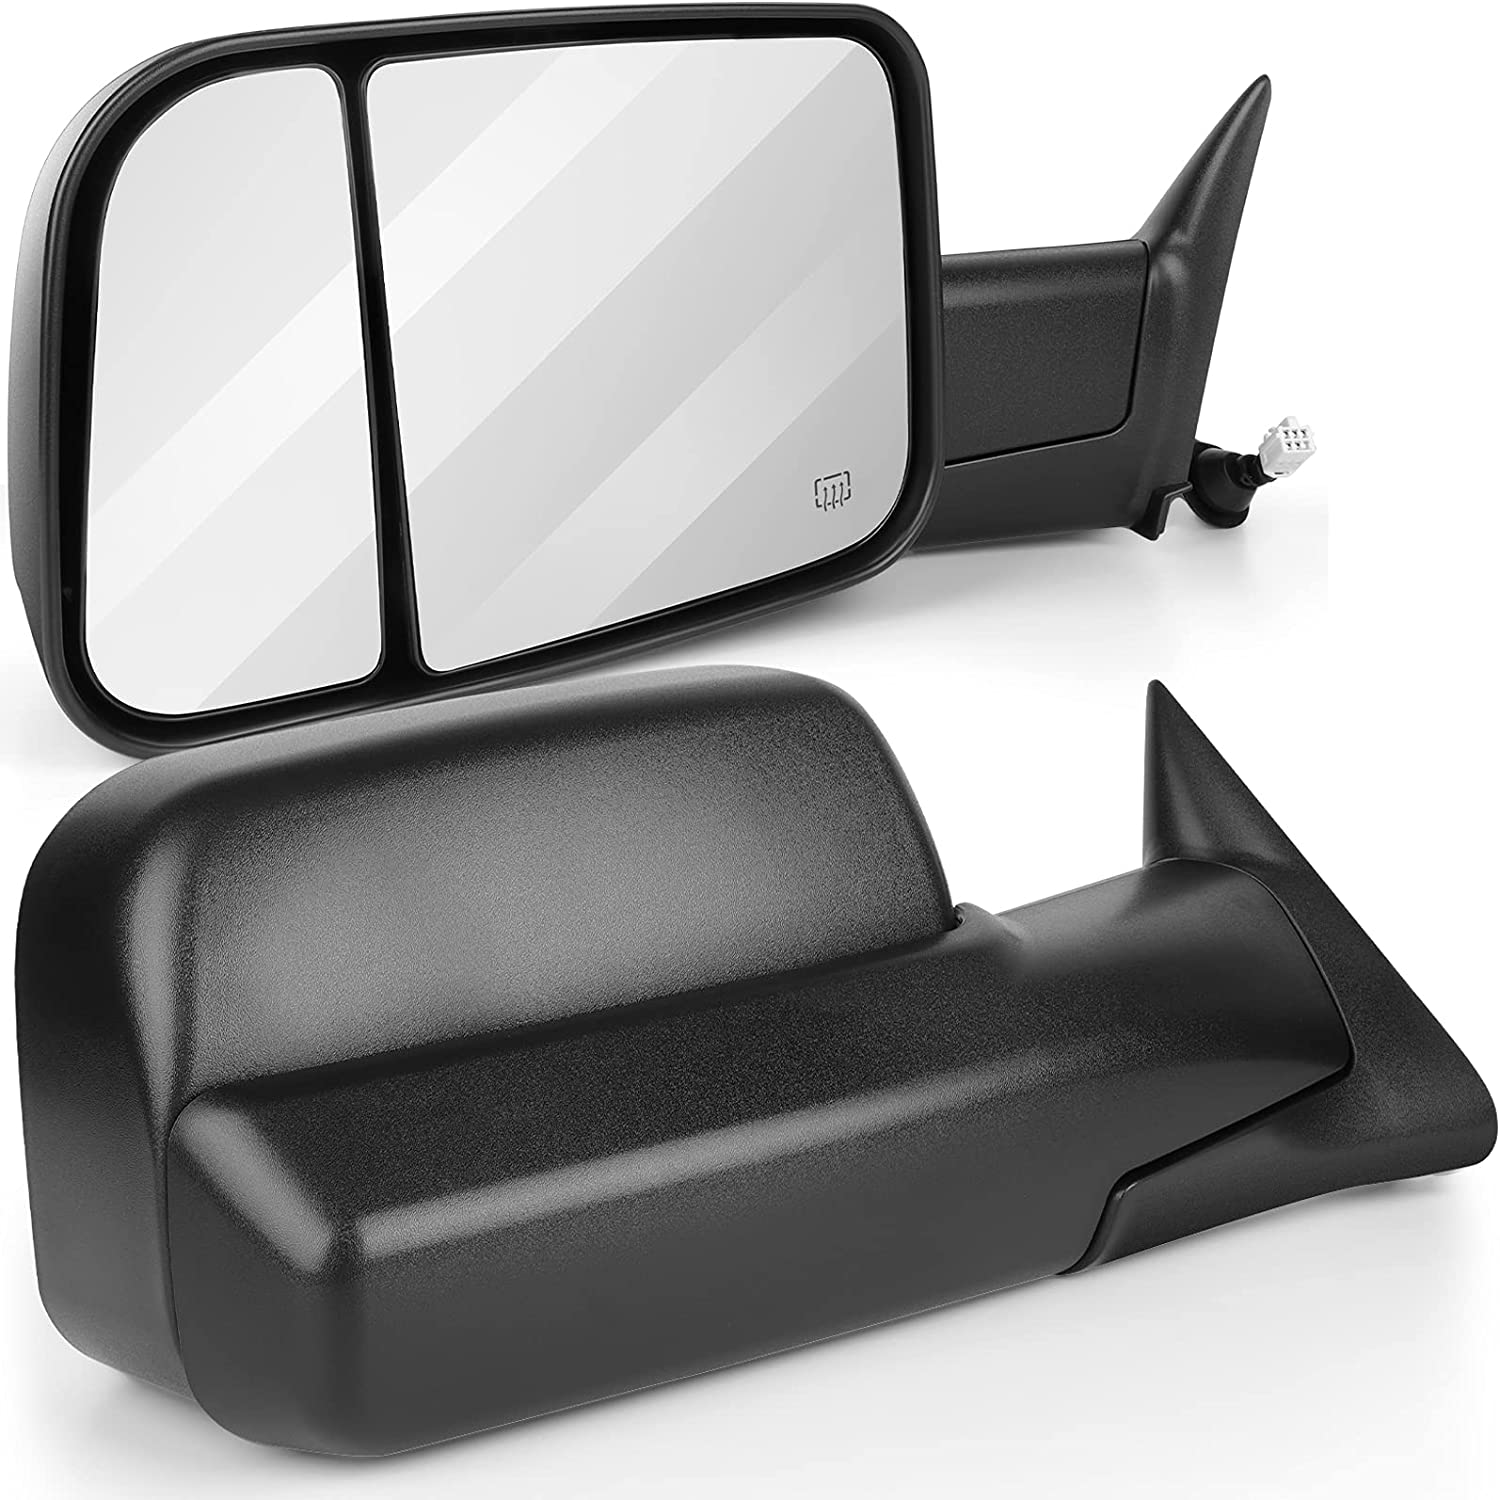 ANPART Towing Long-awaited Mirrors Brand Cheap Sale Venue Fit for 1998-2001 Ram 15 For FOR DODGE